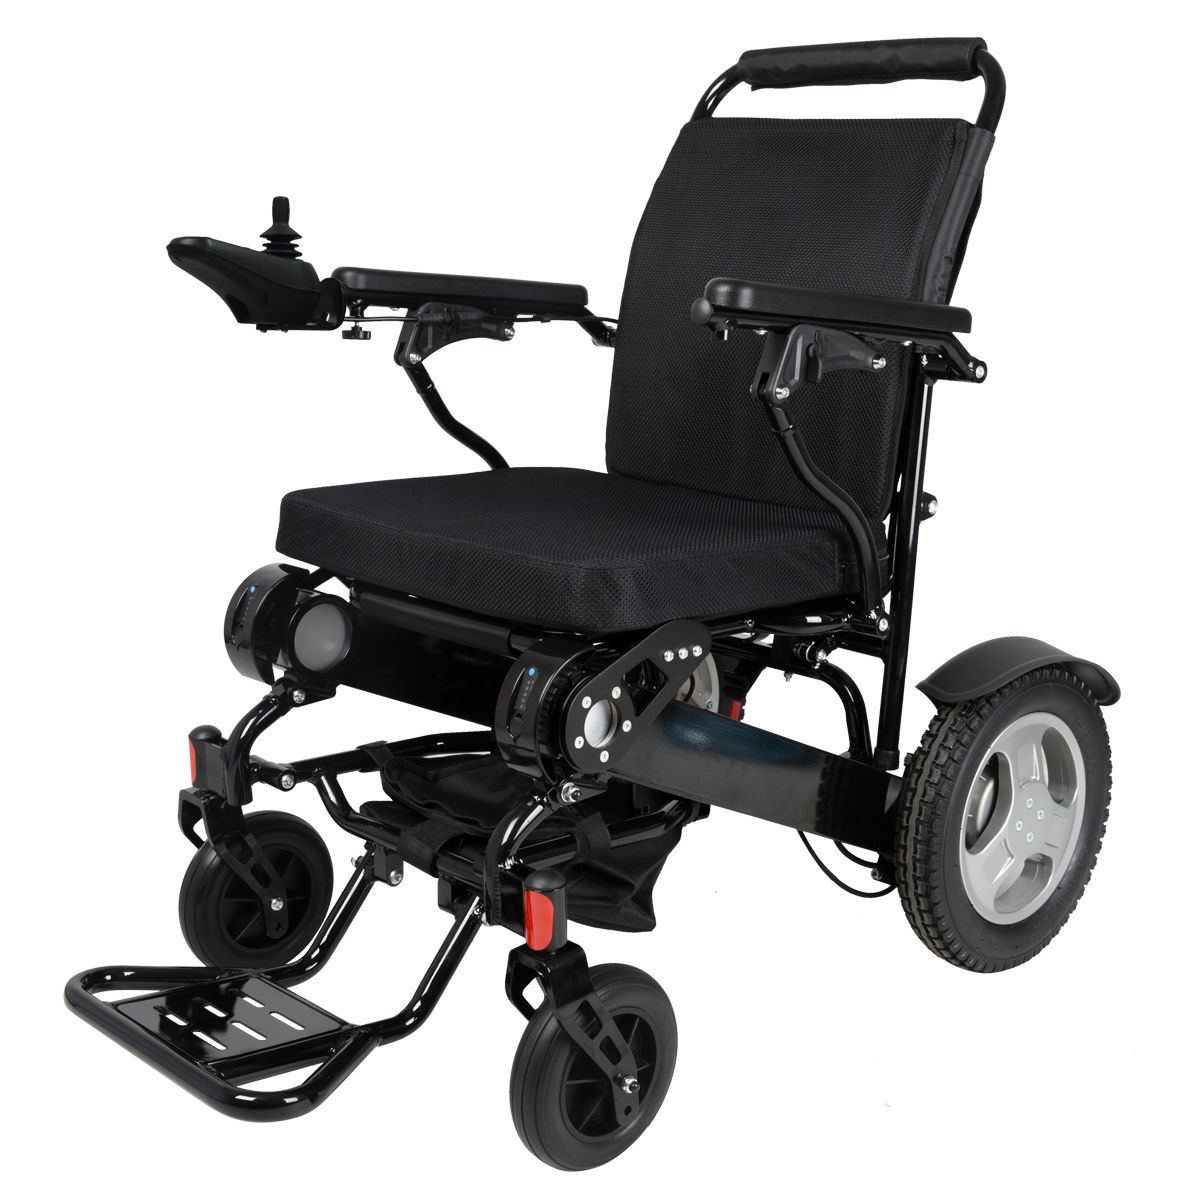 250W electric power chair for the disability Electric